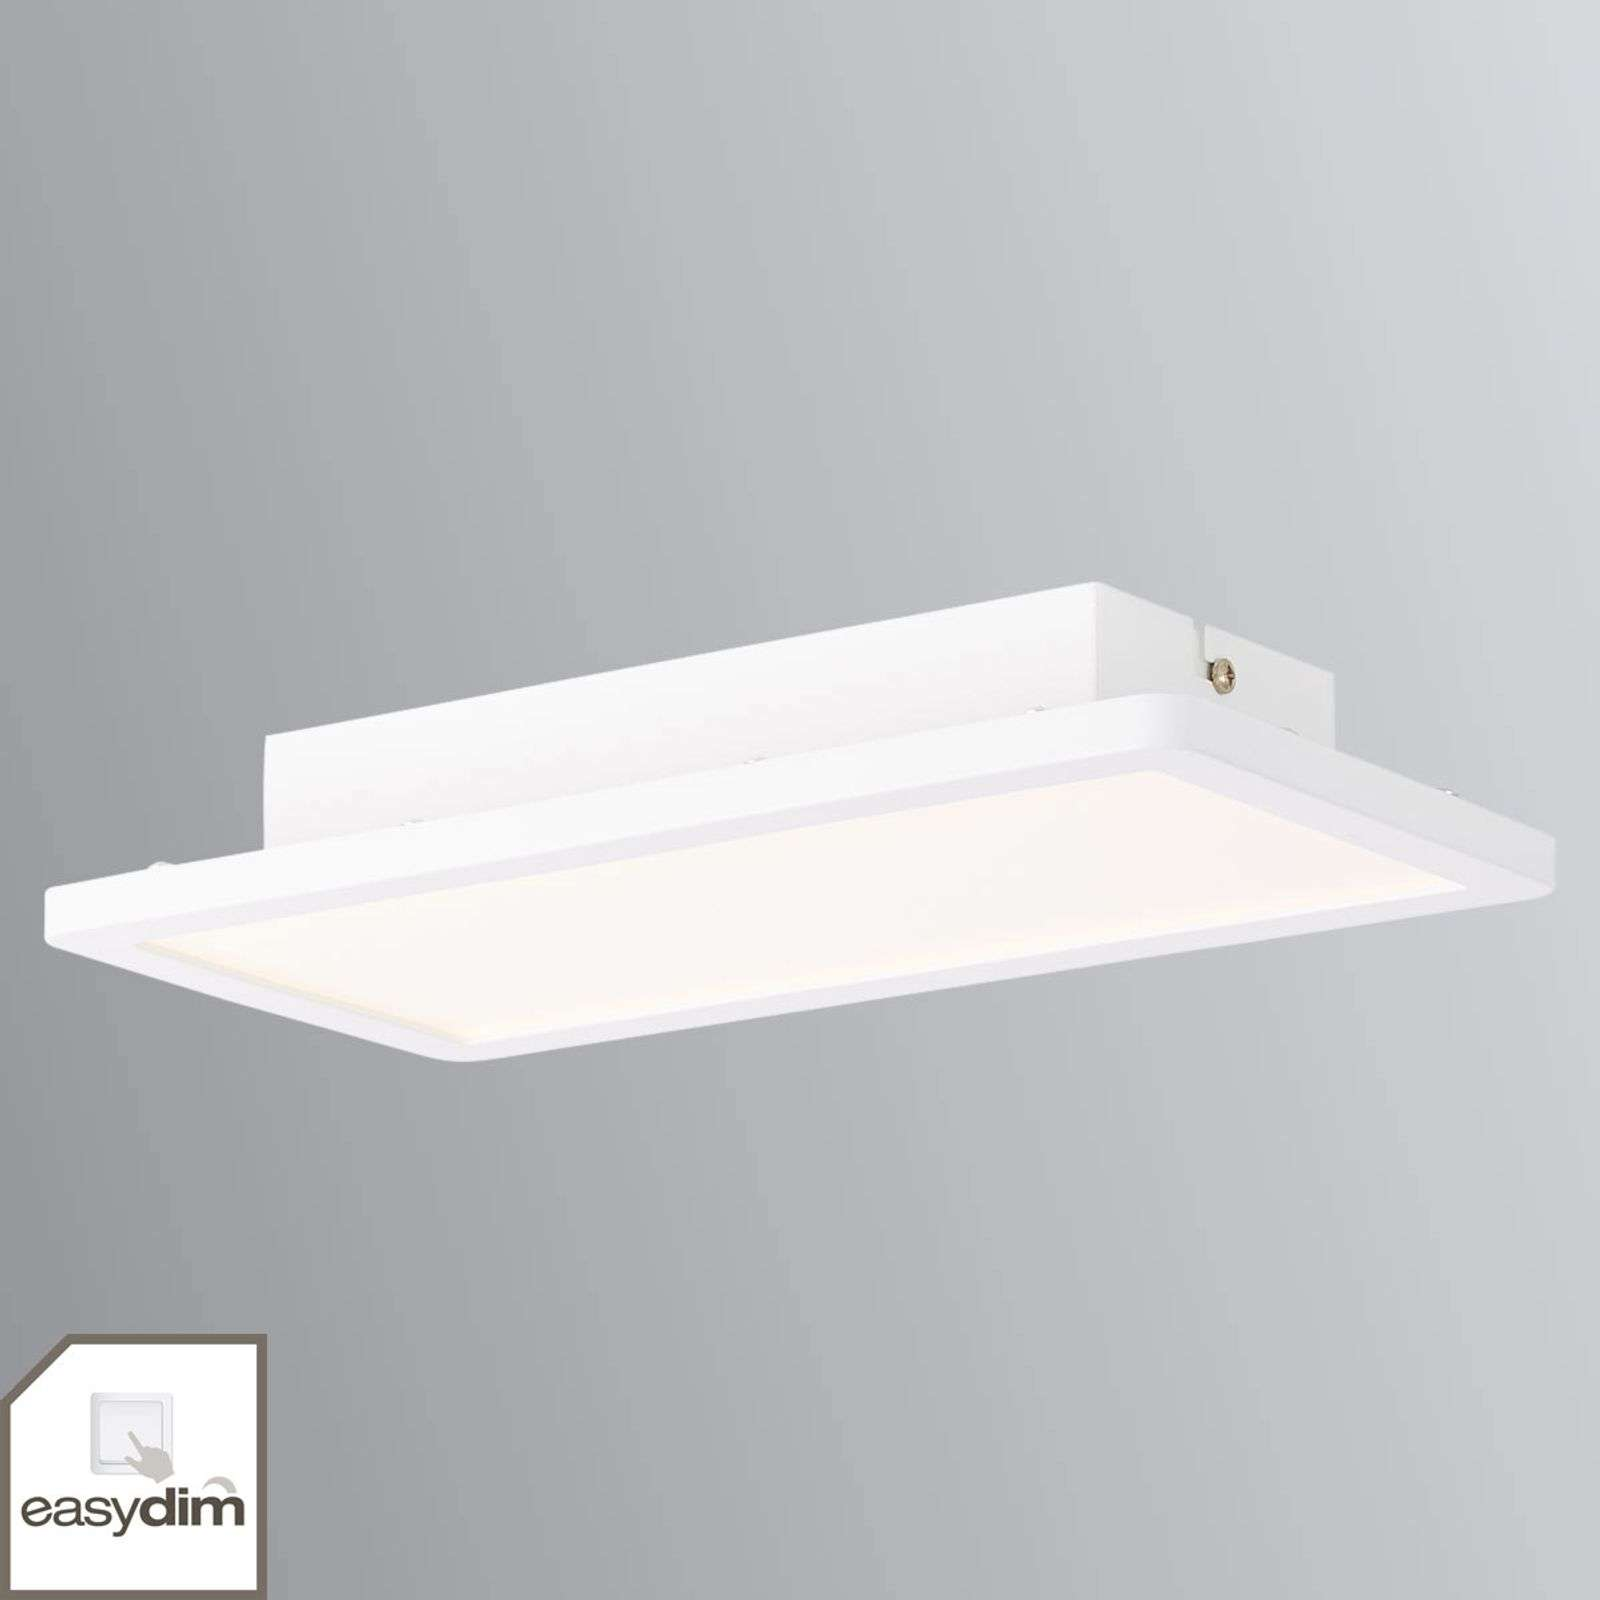 Dimbare LED plafondlamp Scope in wit